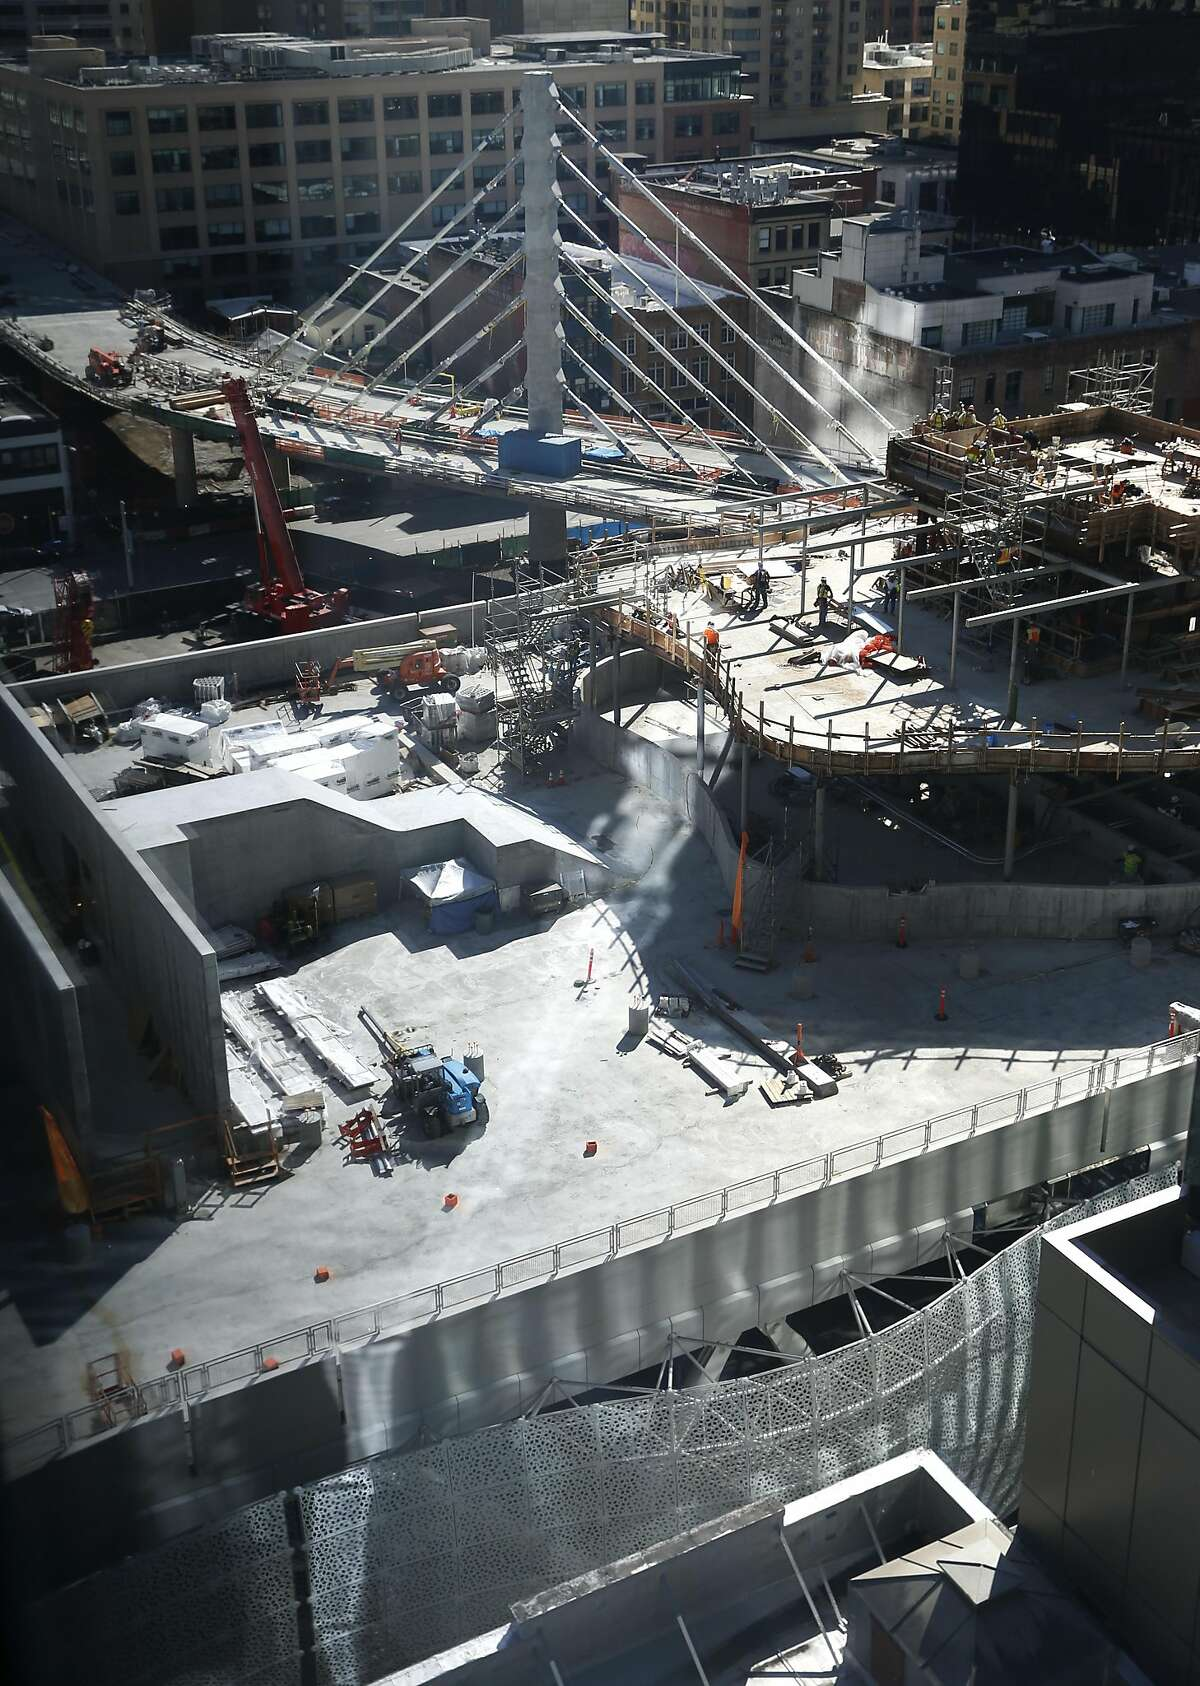 Construction work continues on the Transbay Transit Center project in San Francisco on Saturday, Feb. 11, 2017.